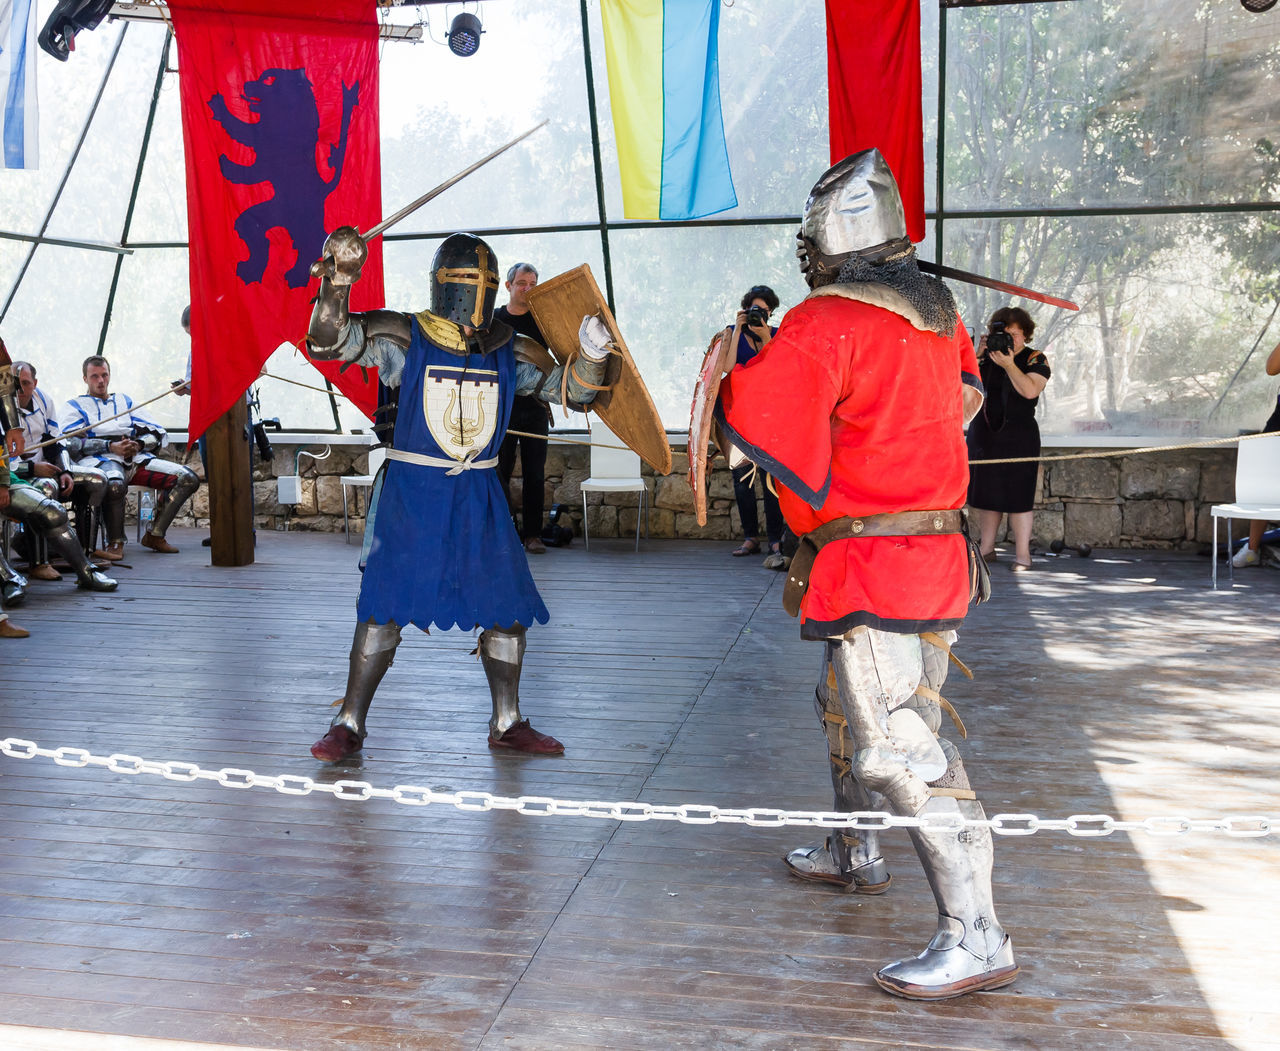 """Jerusalem, Israel, October 03, 2016: Members of the annual festival of """"Knights of Jerusalem"""" dressed as knights, are fighting with swords on the ring in Jerusalem, Israel Ancient Annual Attraction Christian Citizen Decorations Dressed Event Famous Festival History Holy Israel Jerusalem Knight  Land Medieval Member Old Performance Performs Photographer Pose Sword Tradition"""